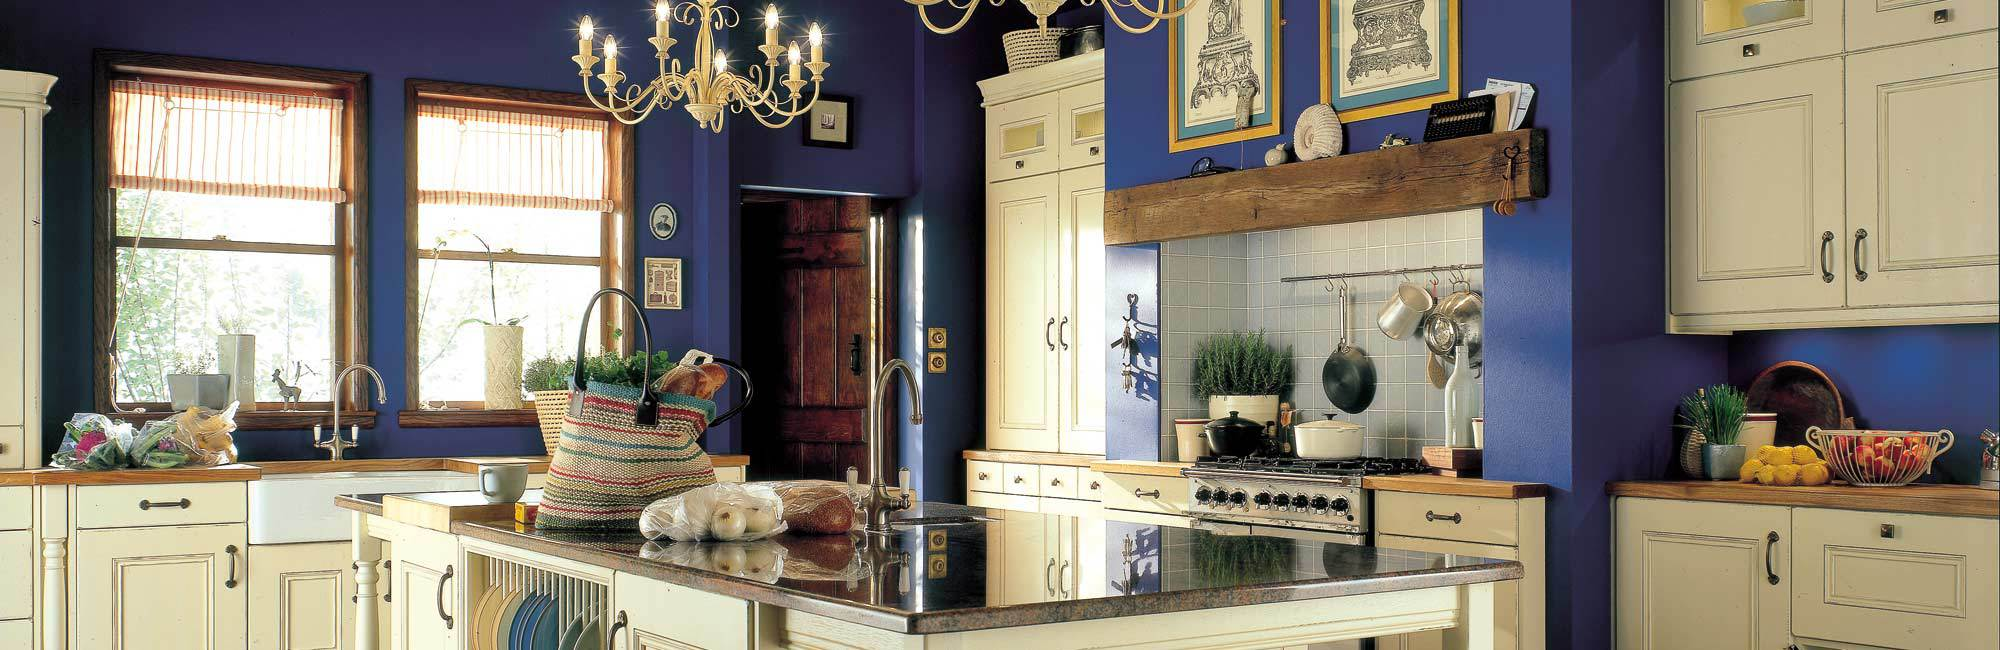 Traditional roya blue and cream kitchen